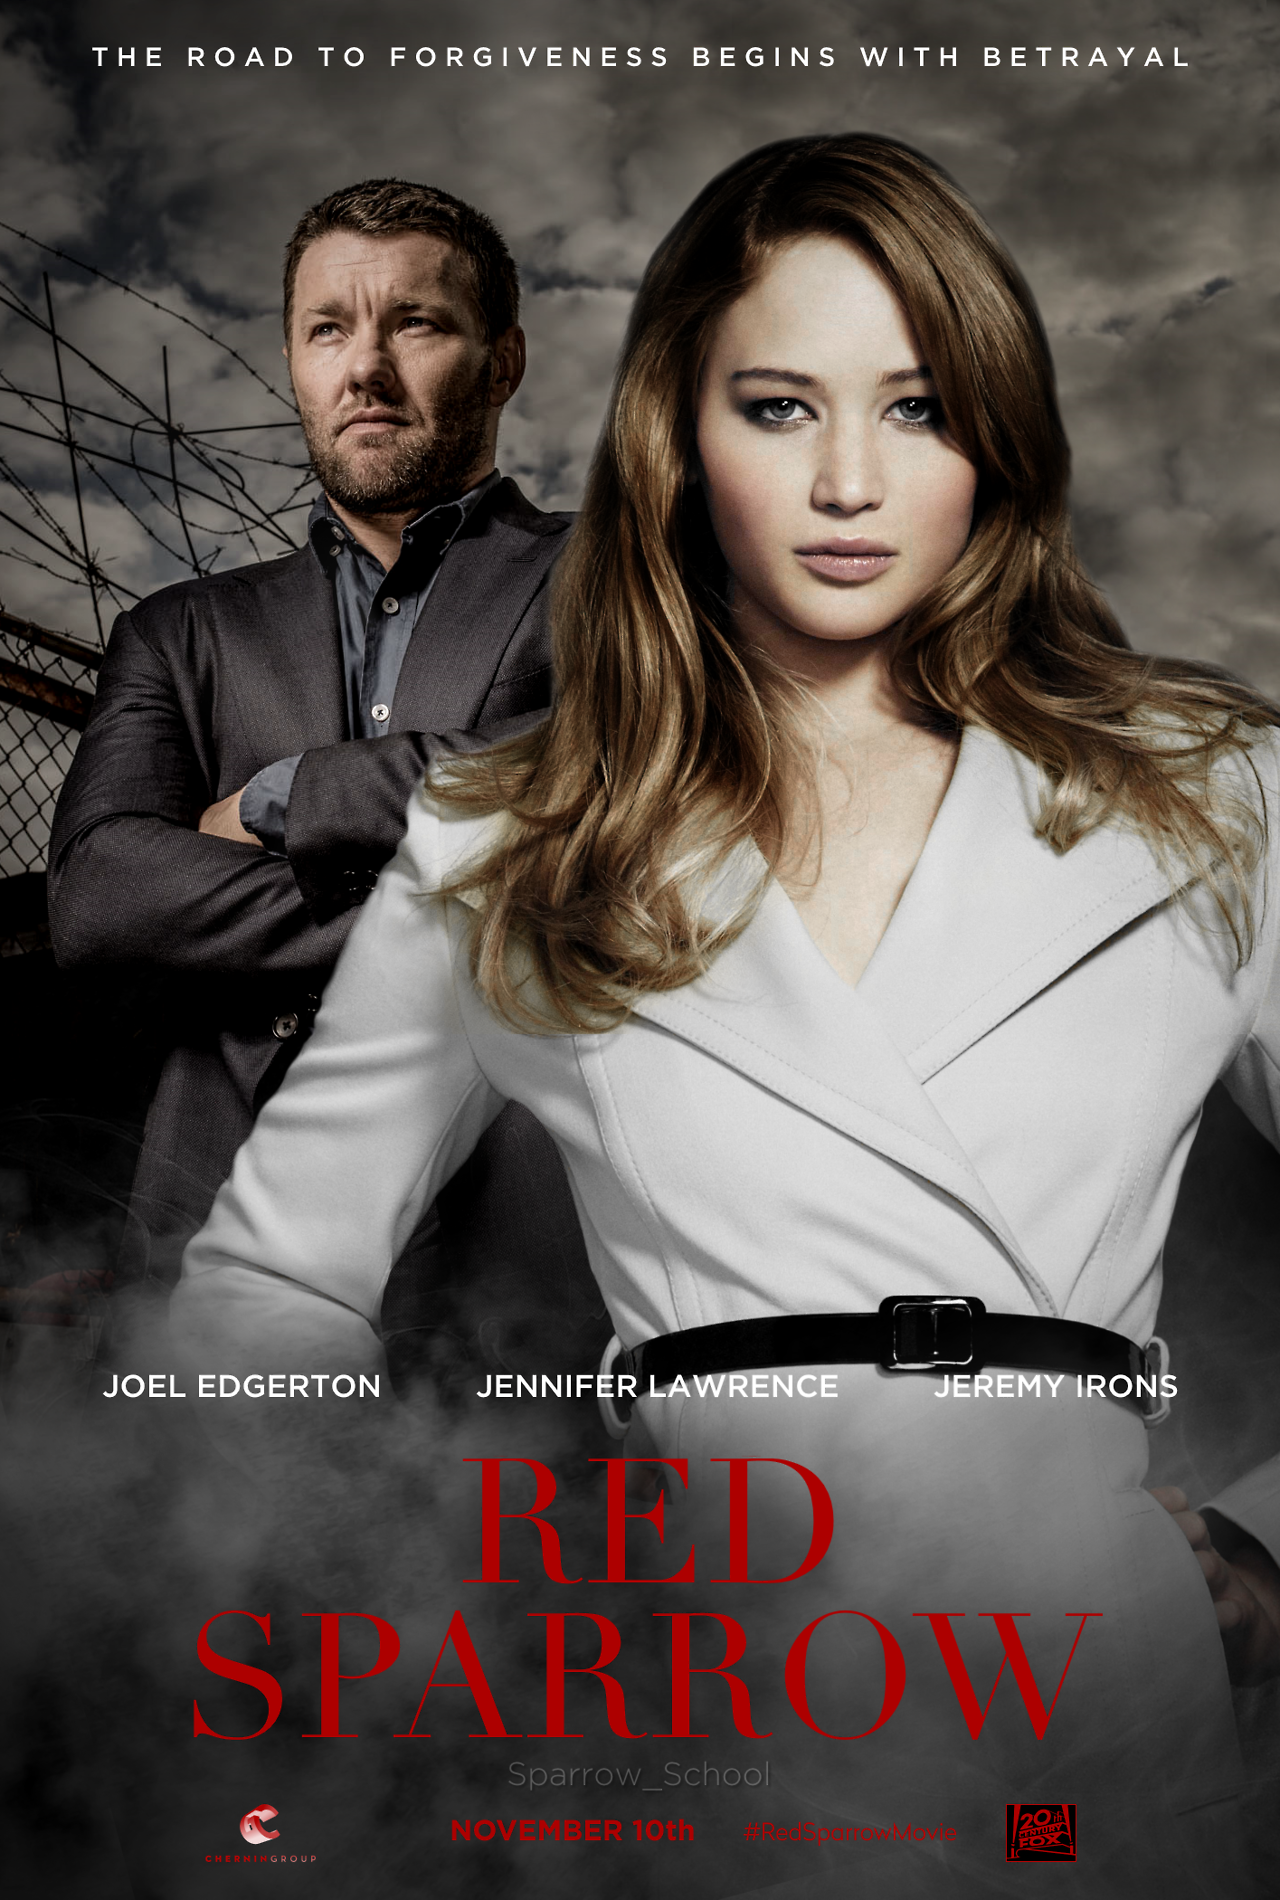 Jennifer Lawrence Films : Photo   Red sparrow, Red sparrow movie, Full  movies online free